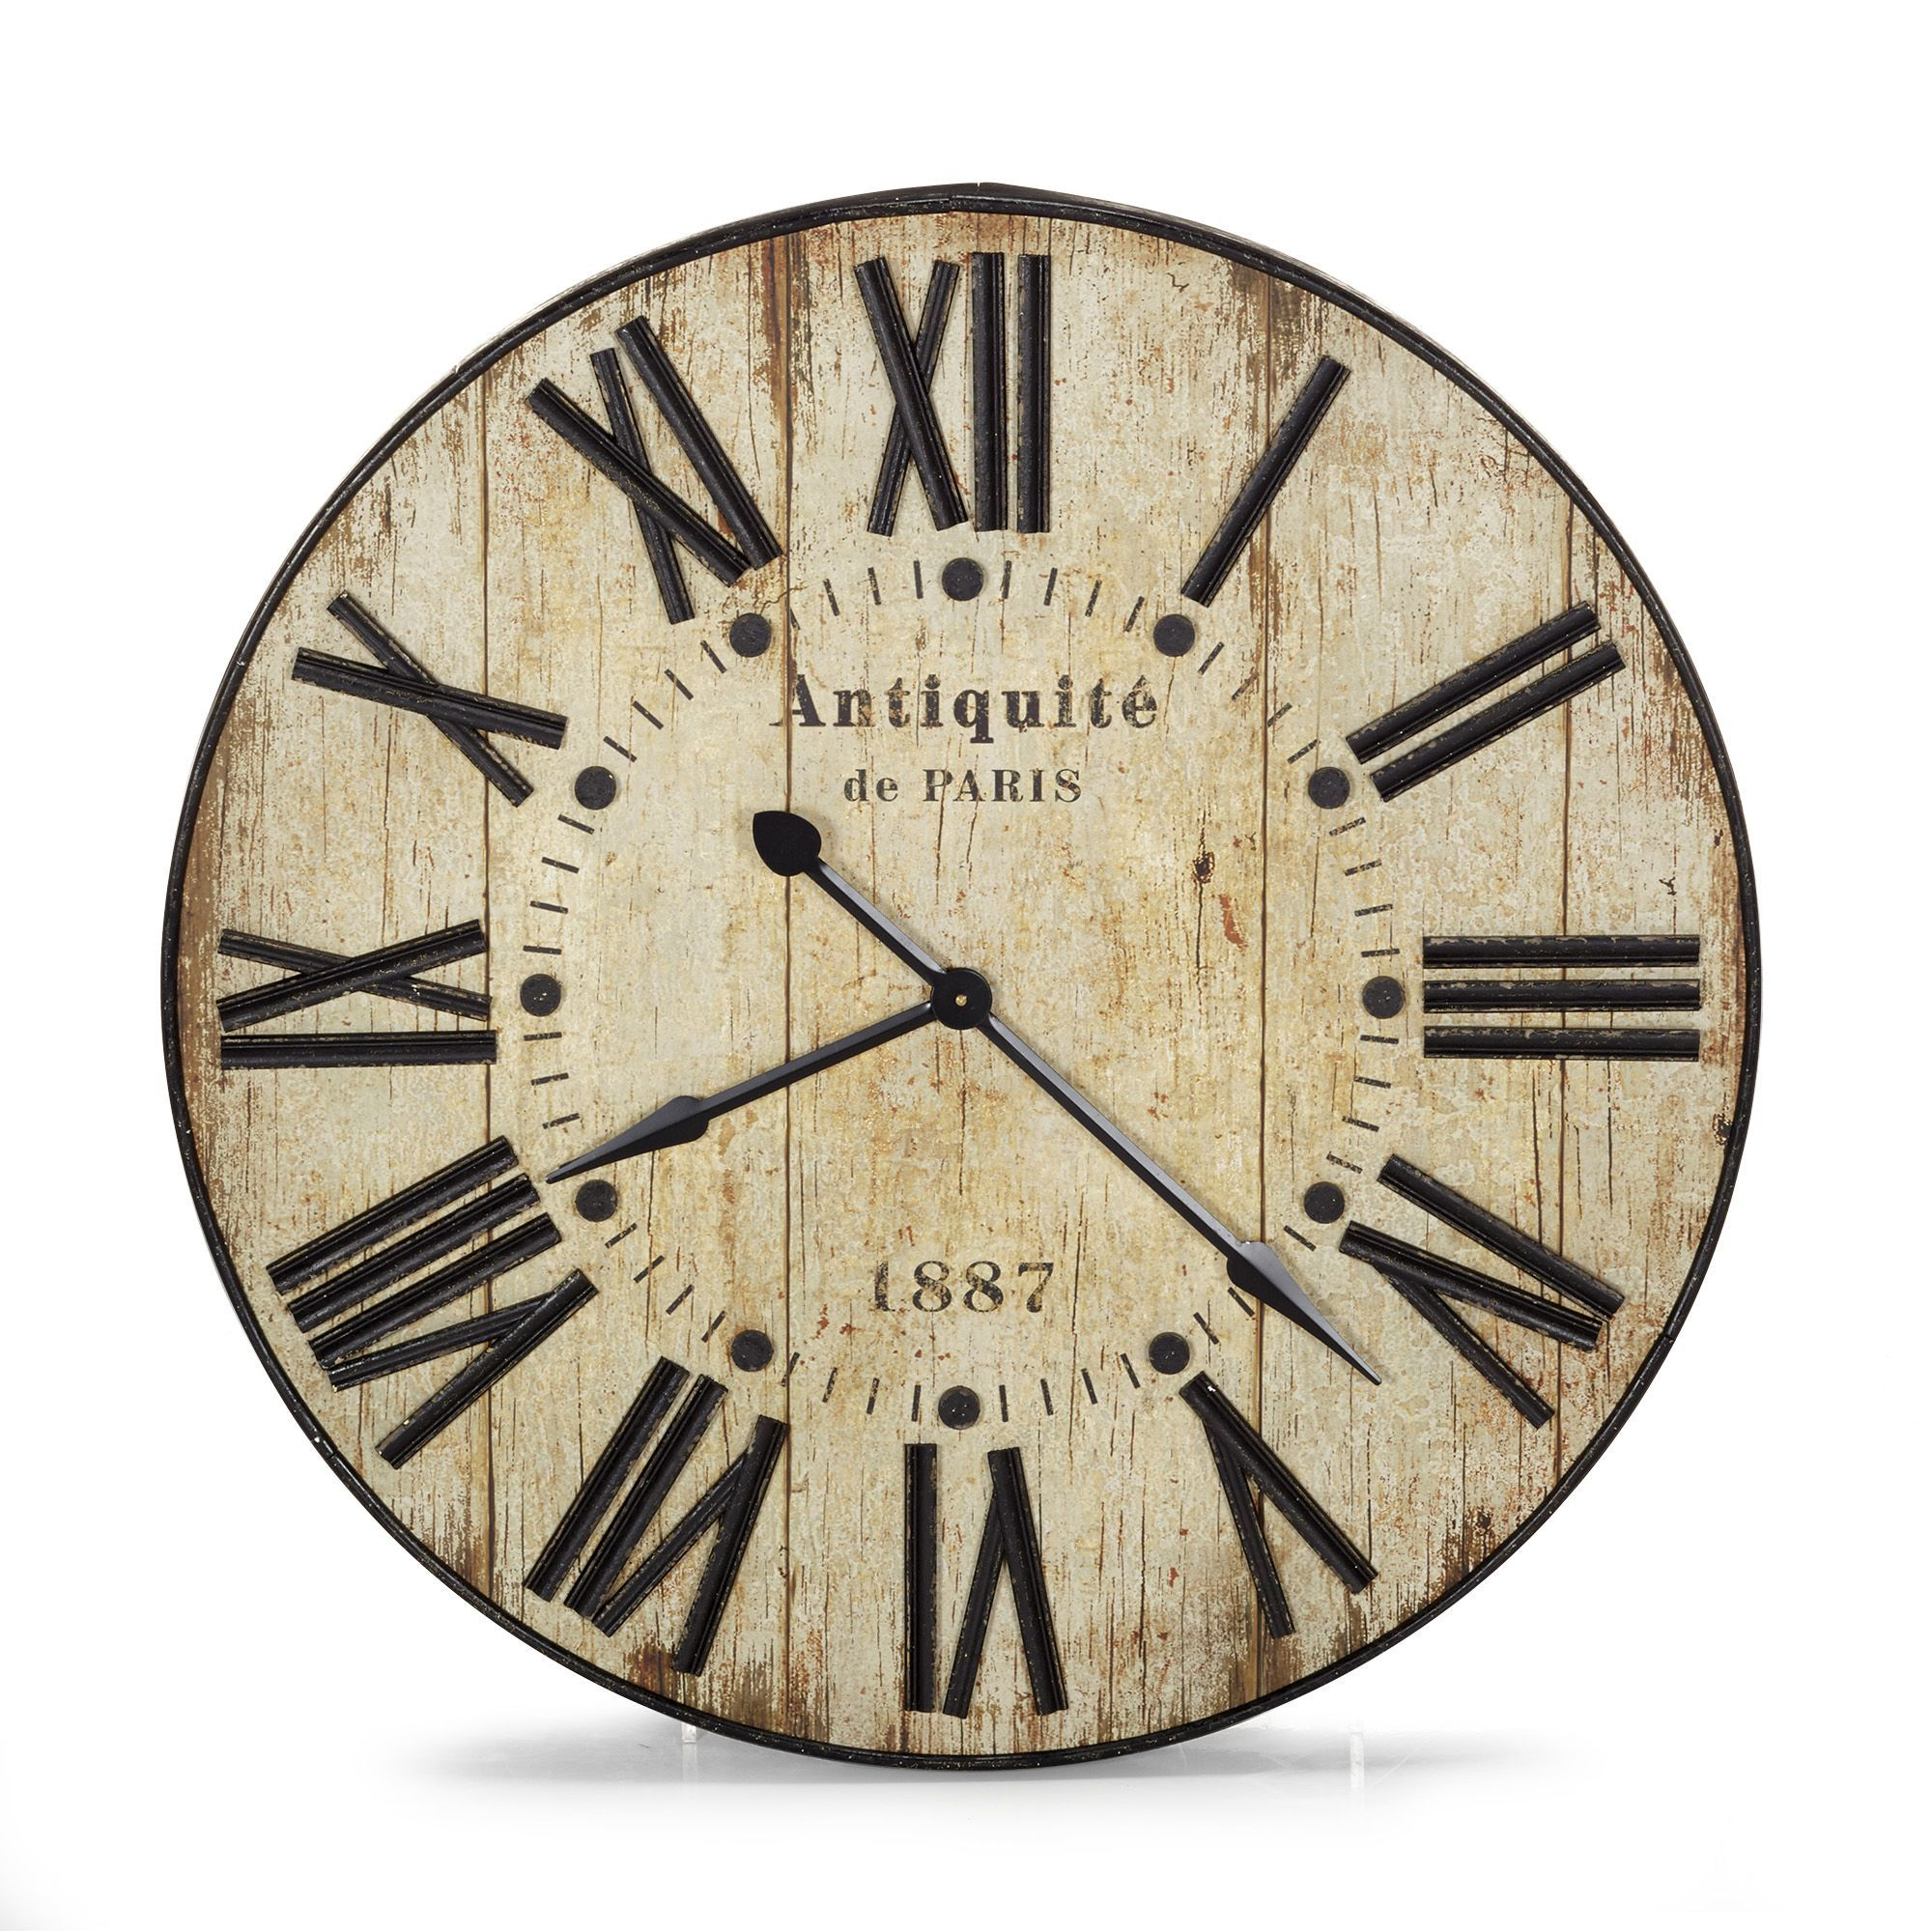 horloge murale 90cm de diam tre au style industriel antiquit les hor graphics by sandra. Black Bedroom Furniture Sets. Home Design Ideas